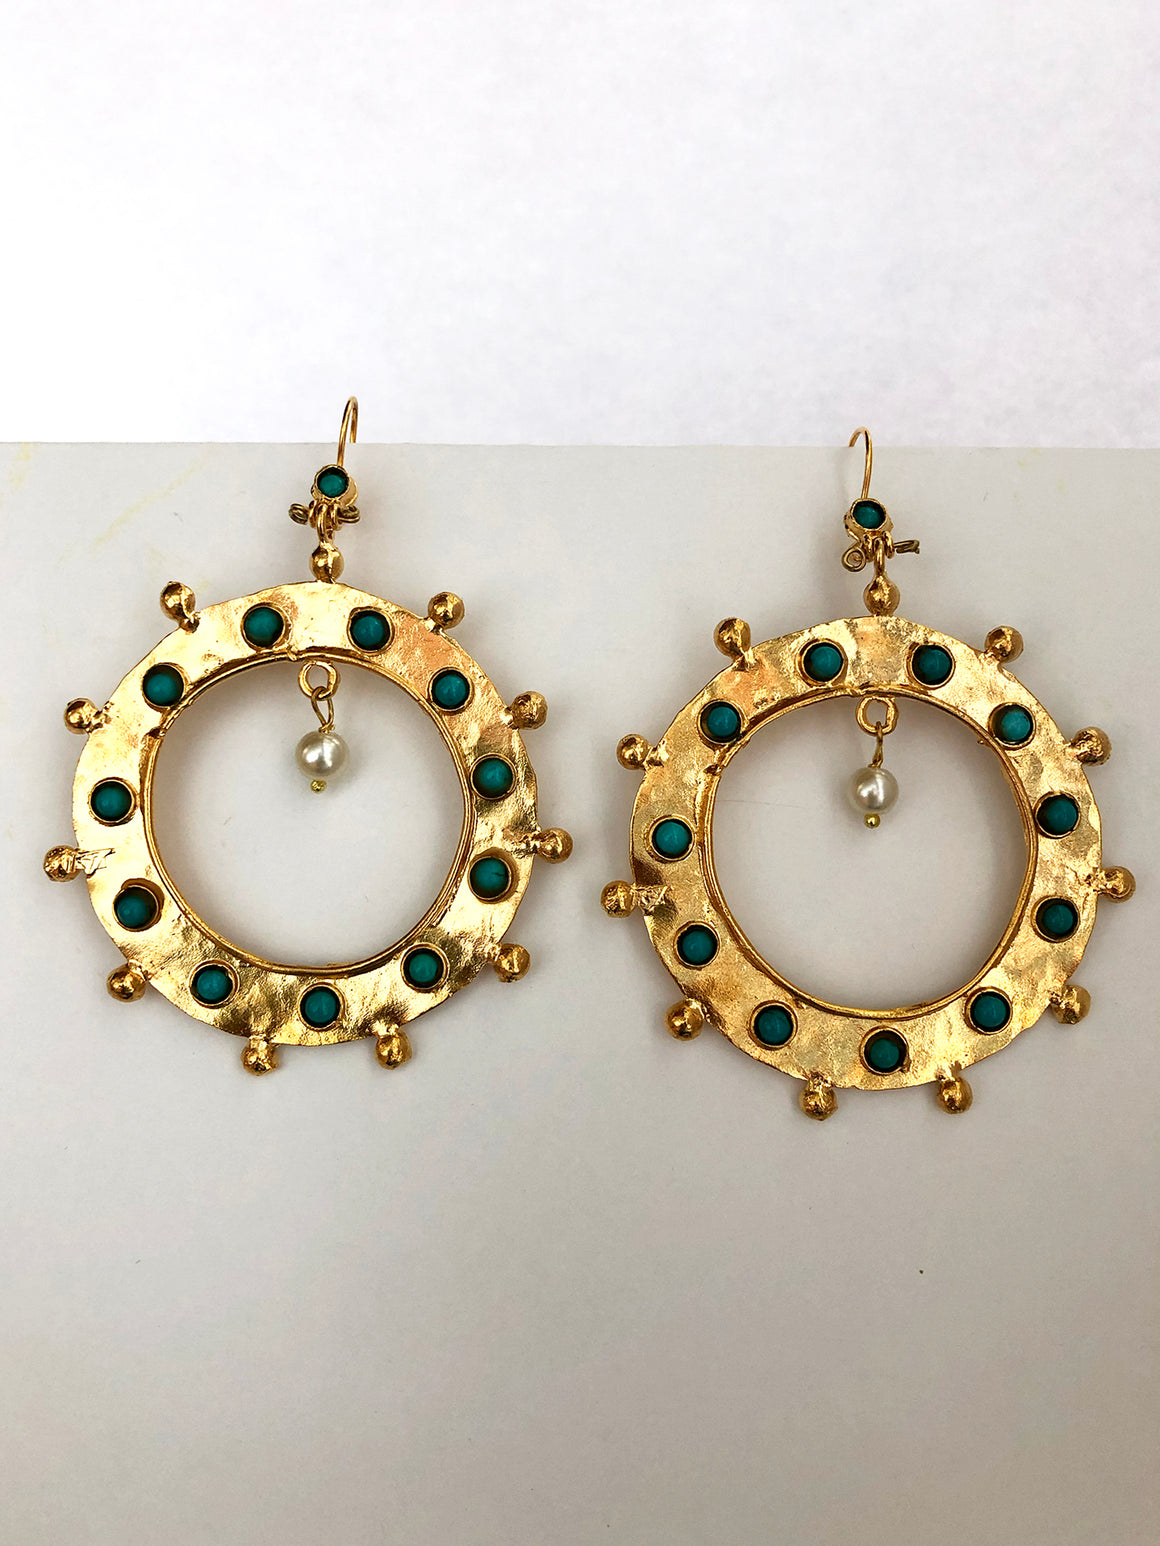 R & M Turkish earrings